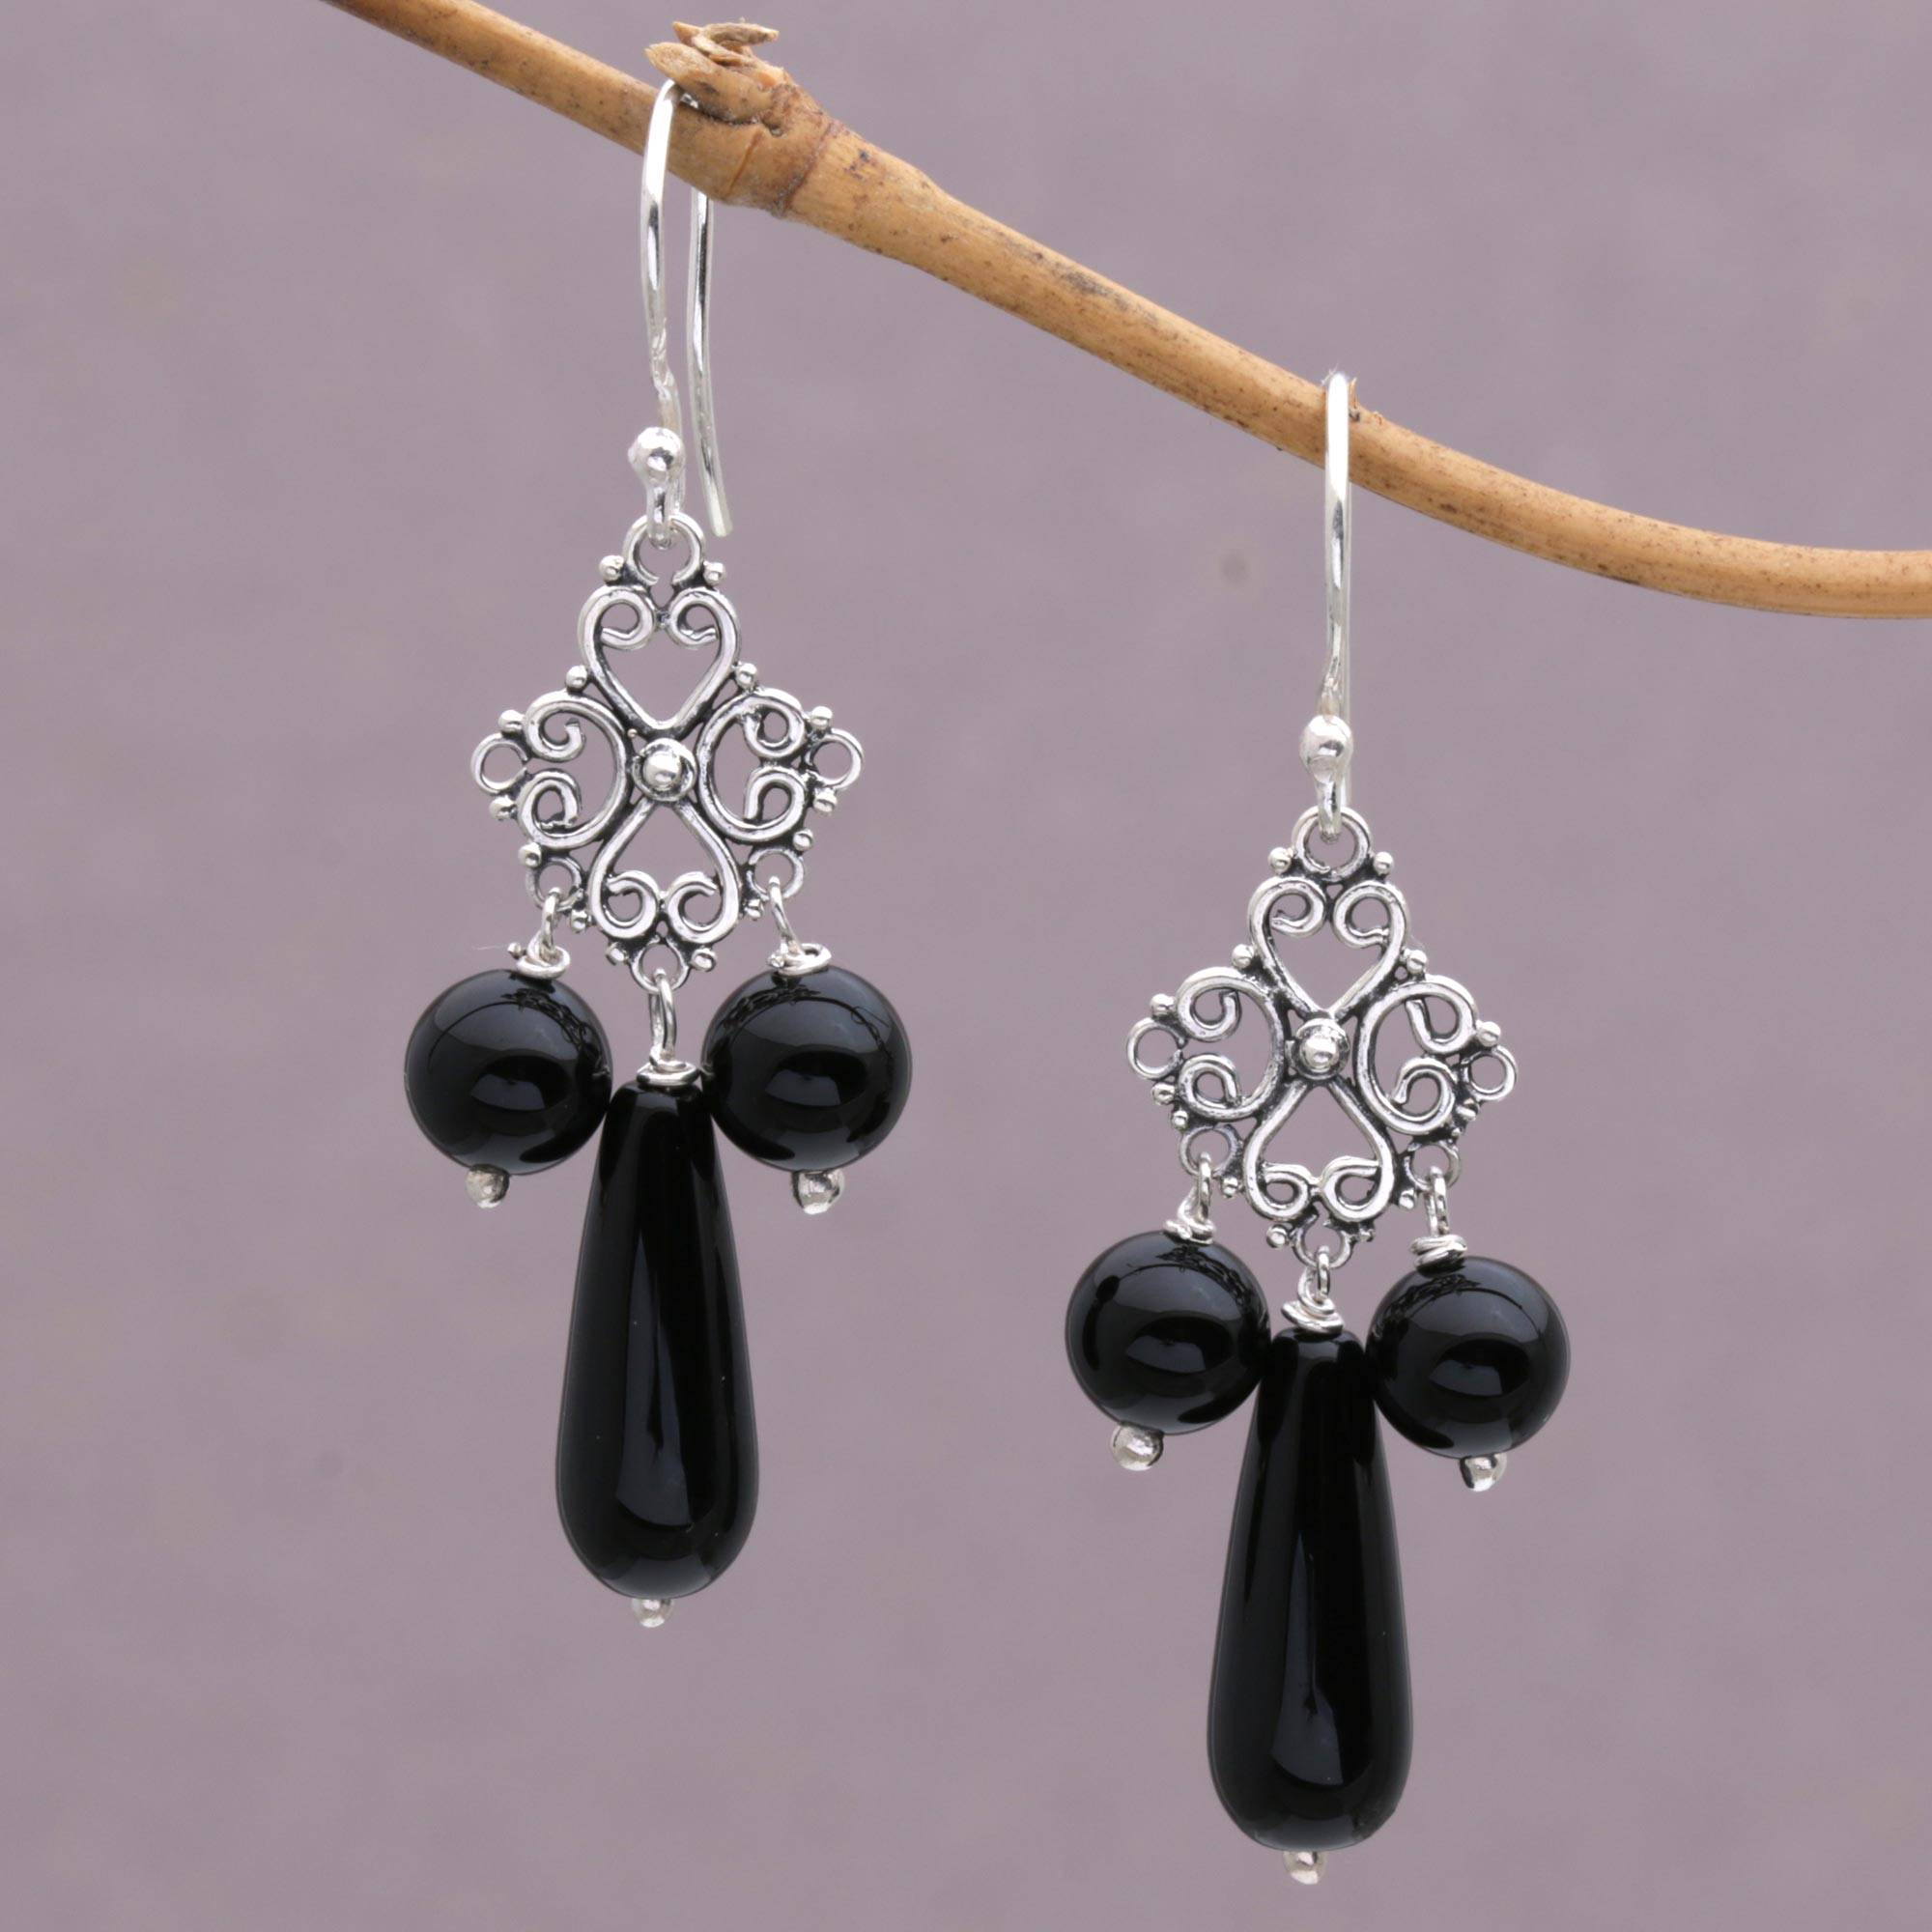 Onyx and sterling silver chandelier earrings from indonesia black onyx and sterling silver chandelier earrings from indonesia black droplets novica arubaitofo Gallery